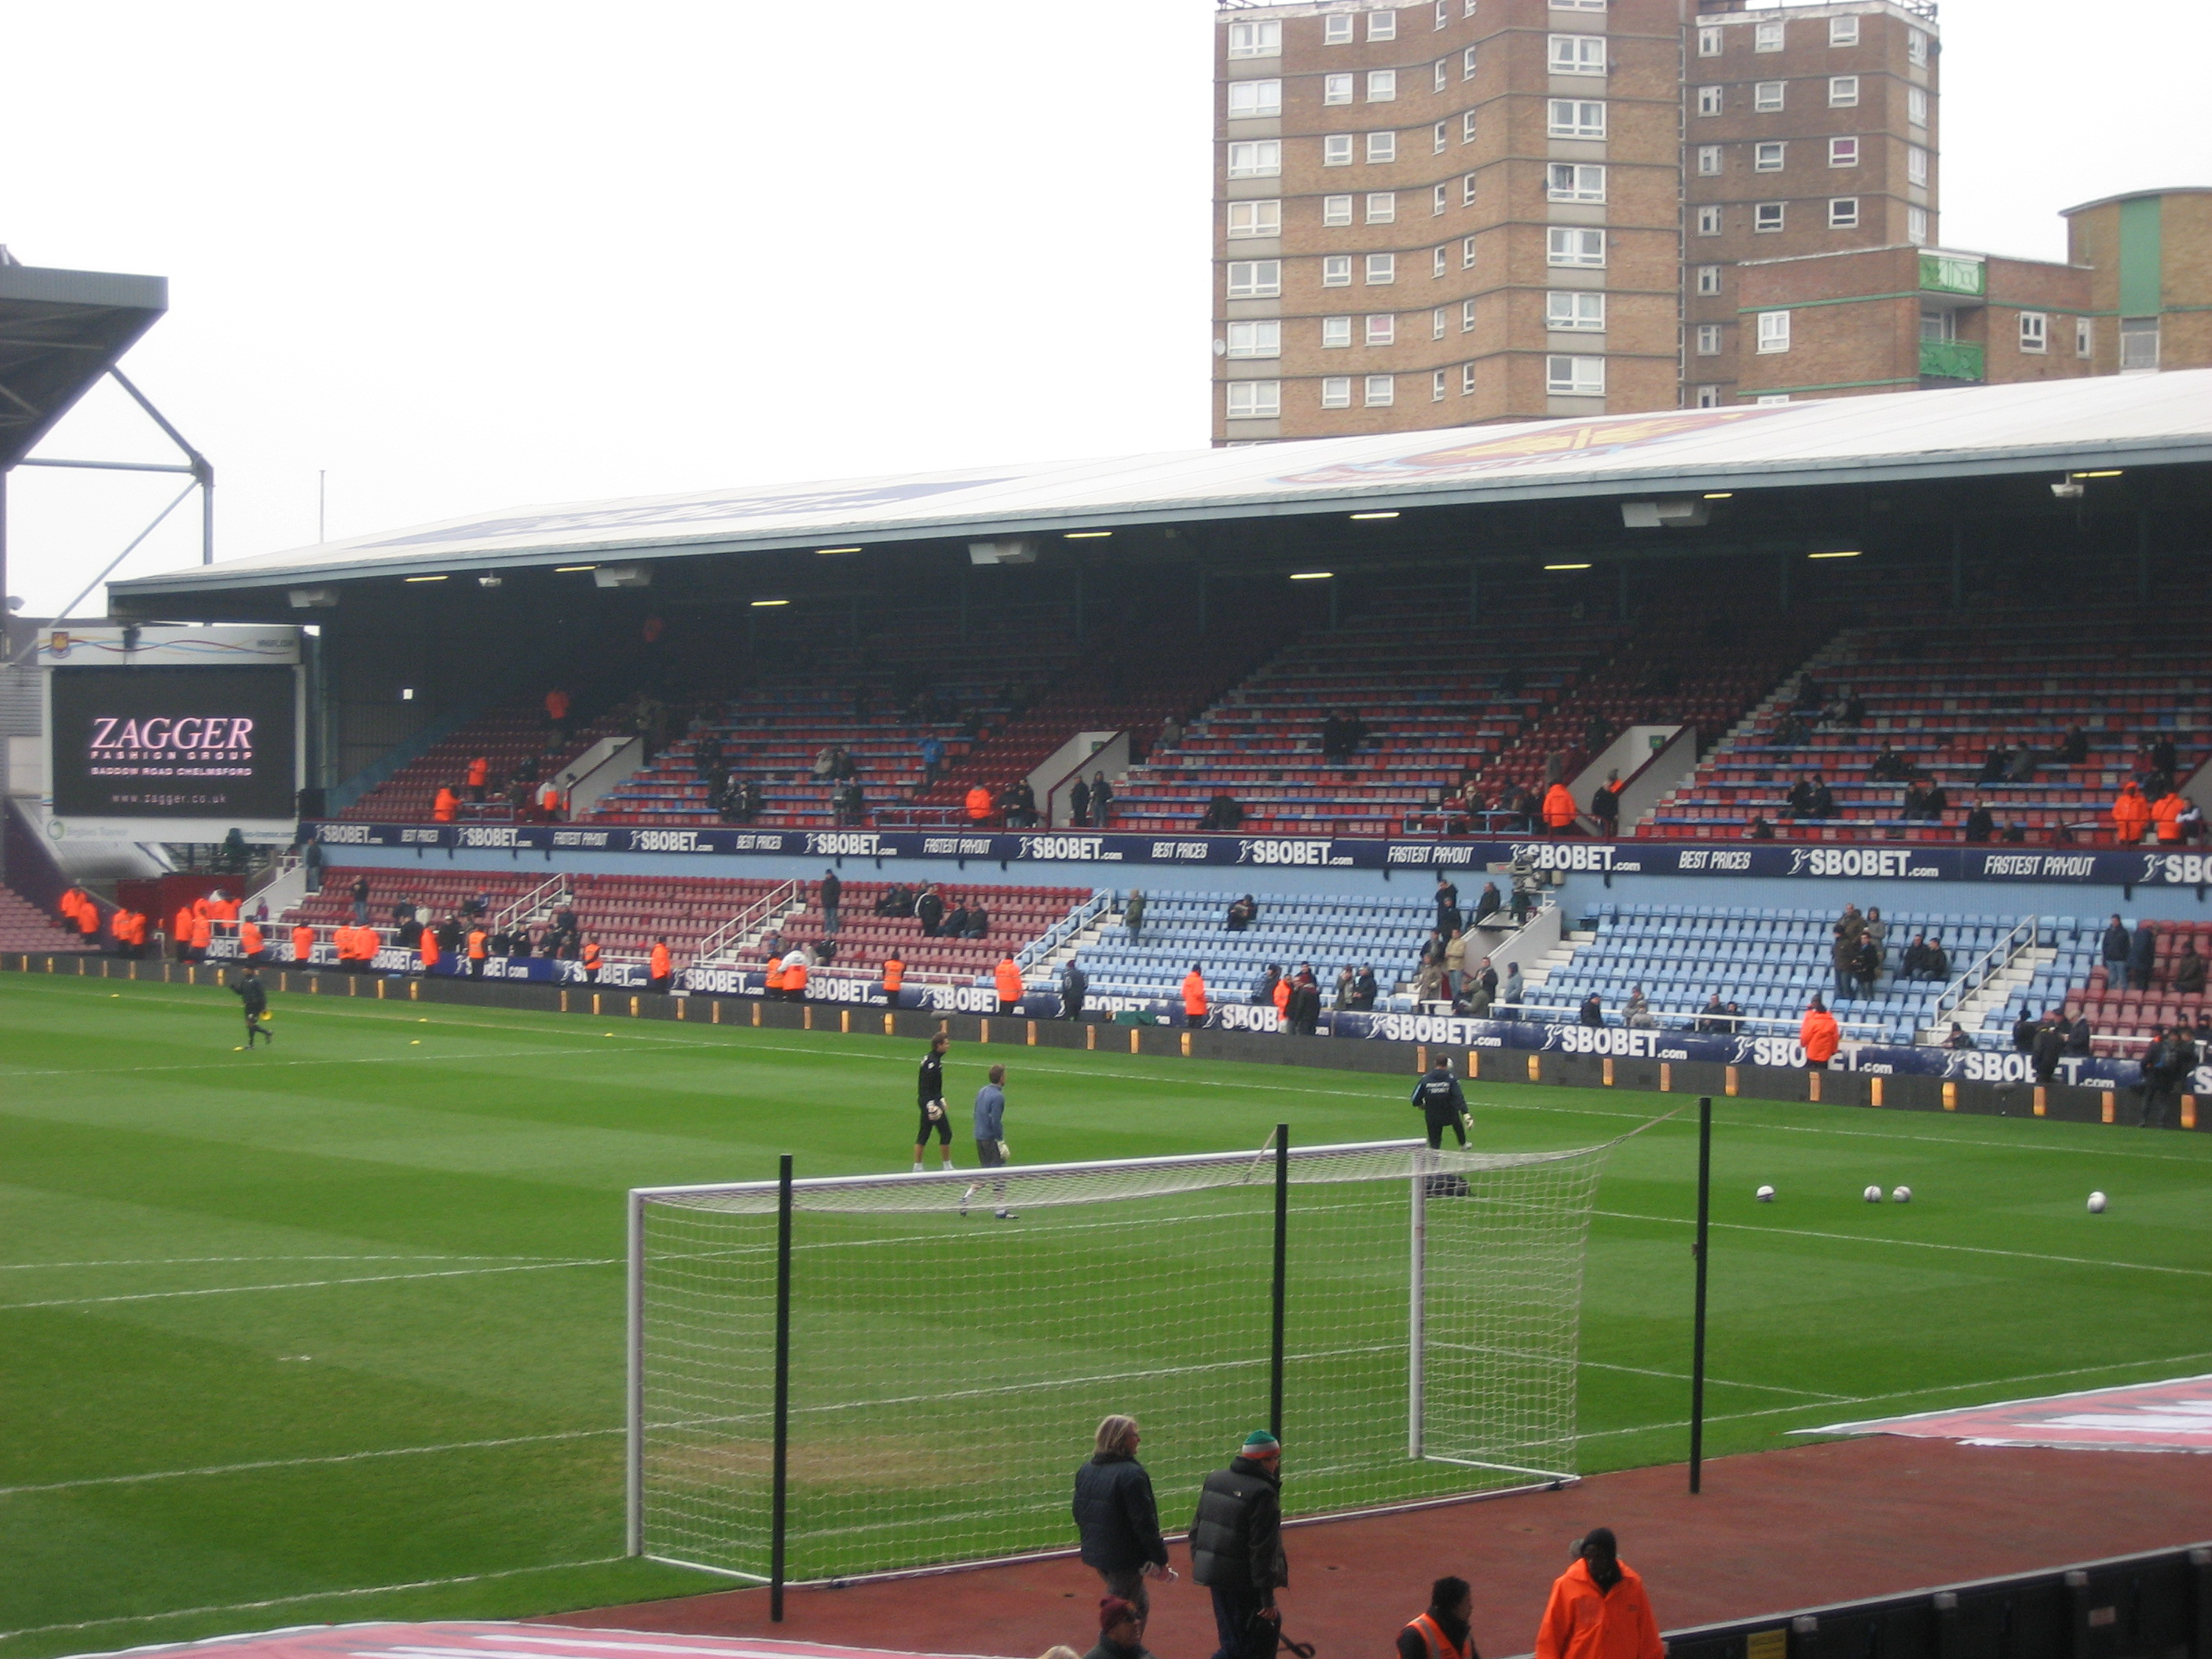 The East Stand, Upton Park